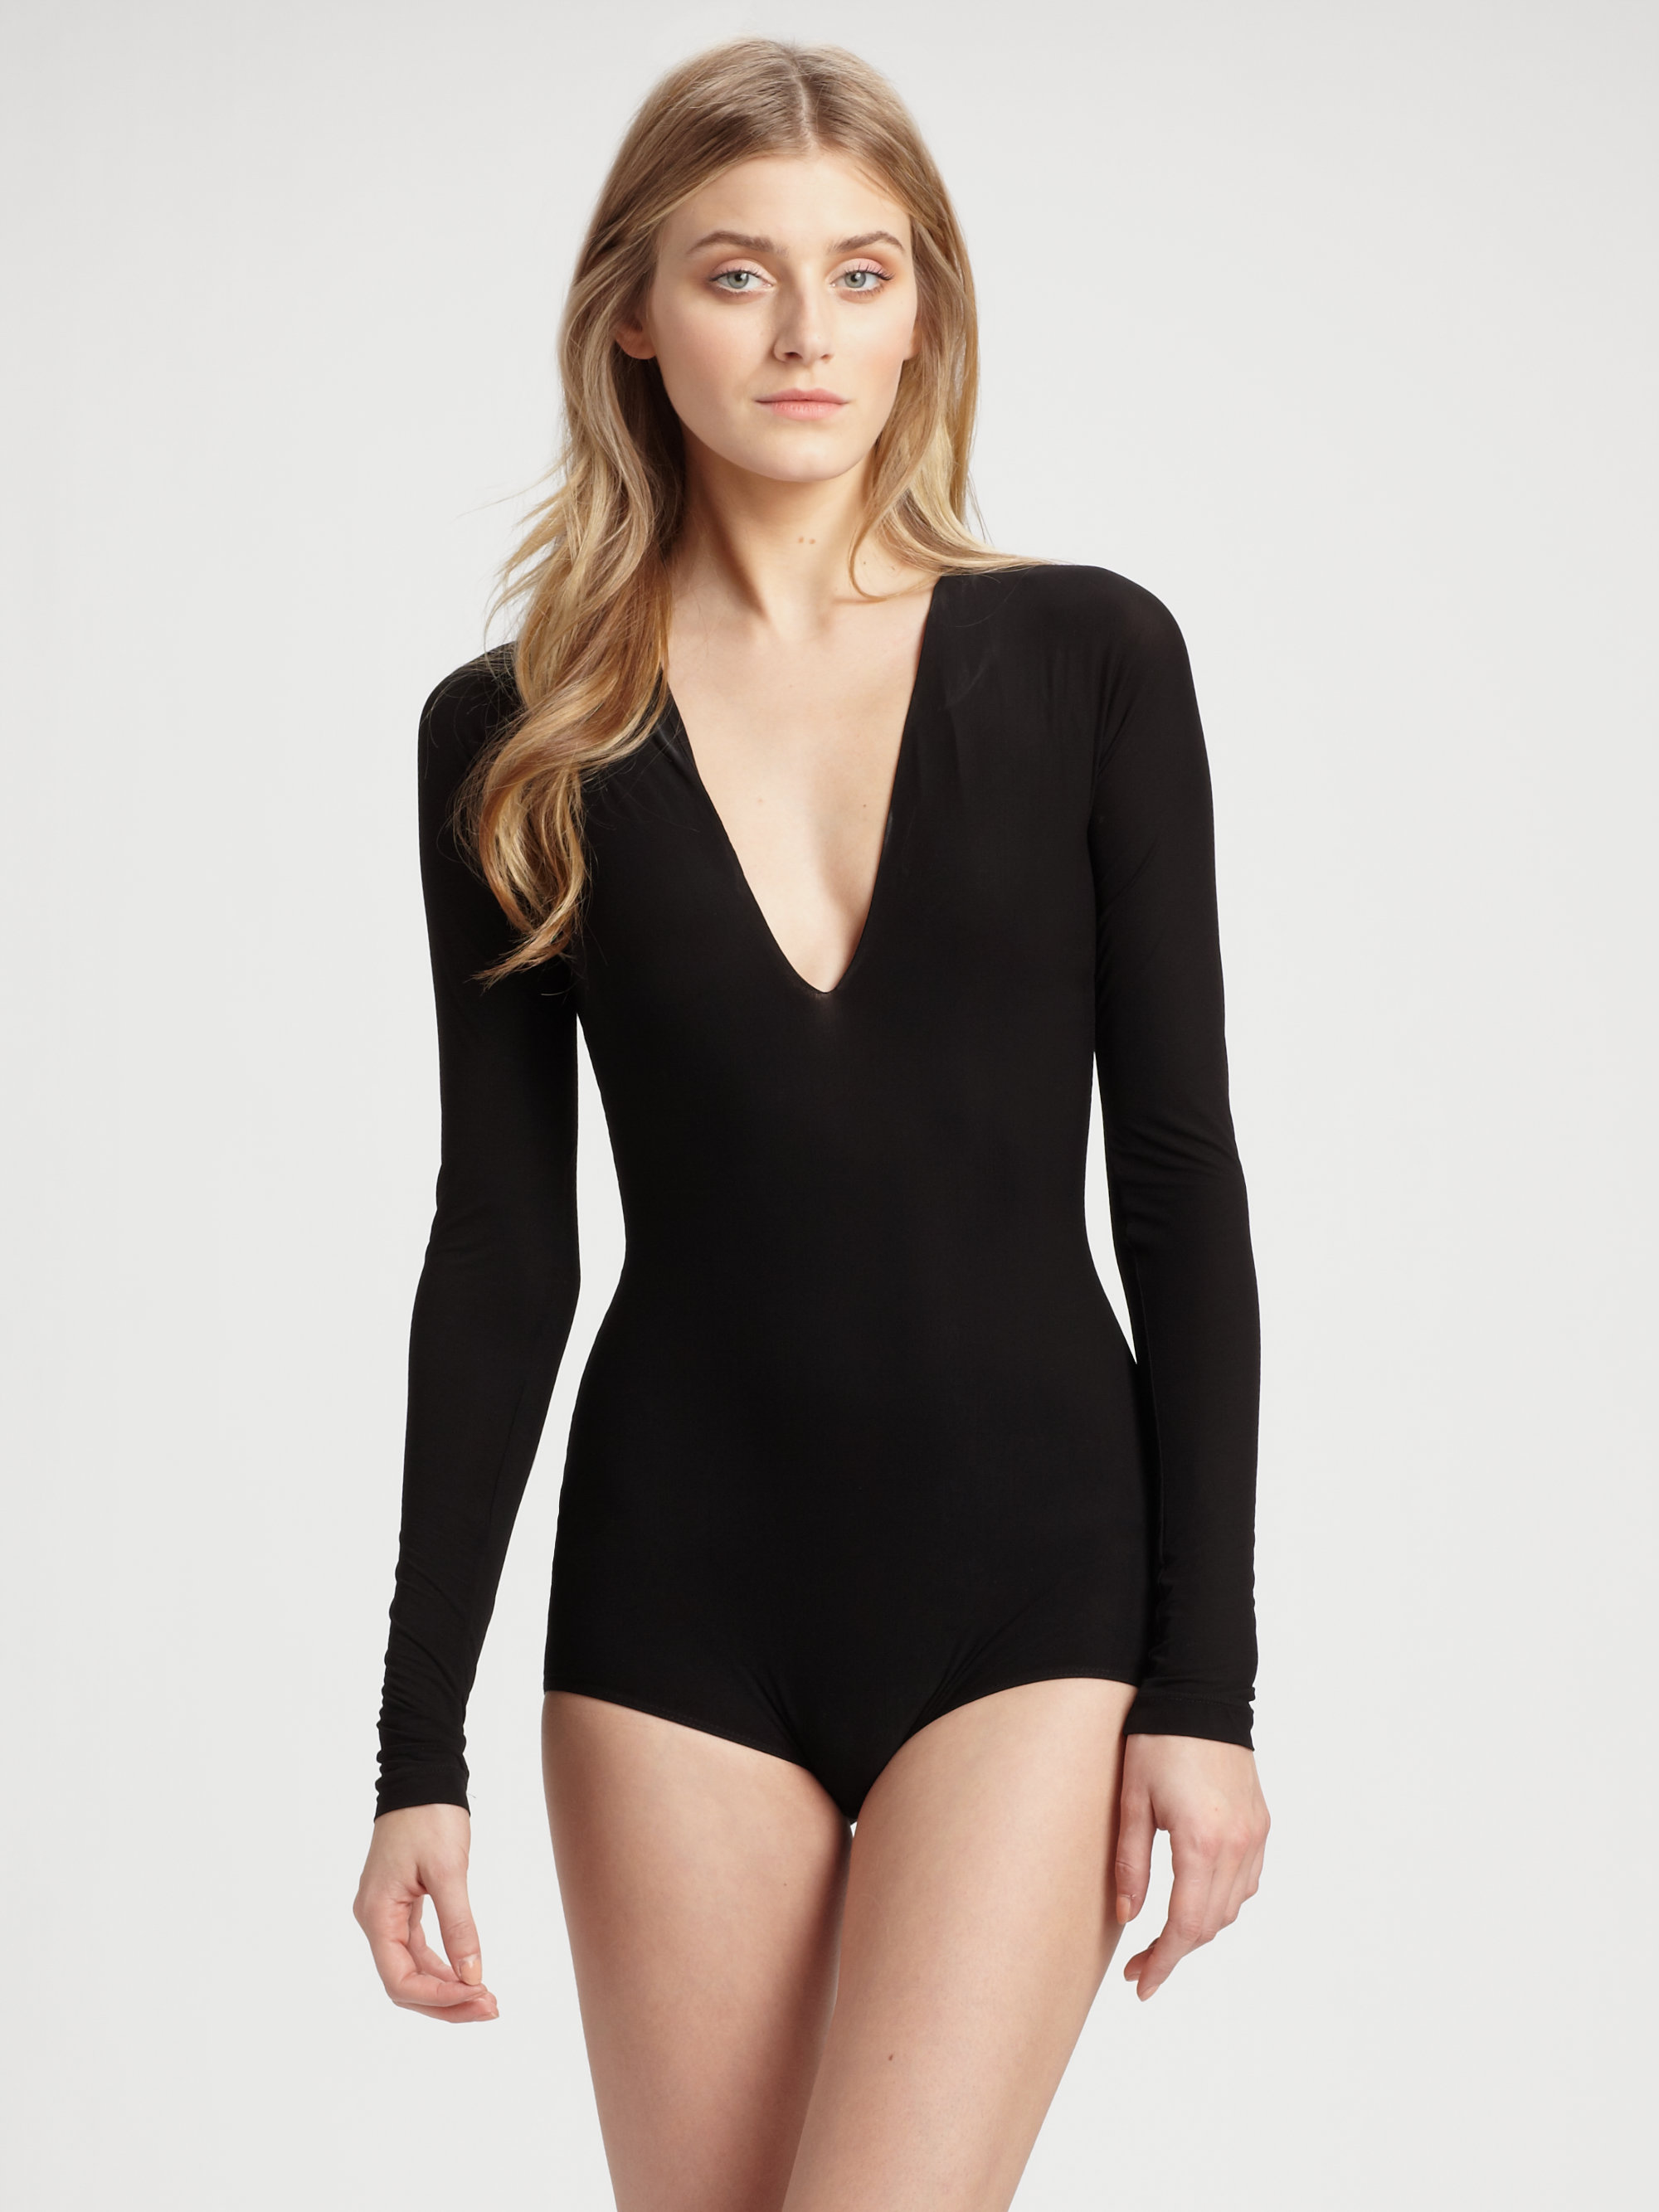 Donna karan new york sheer jersey v plunge bodysuit in black for Donna karen new york